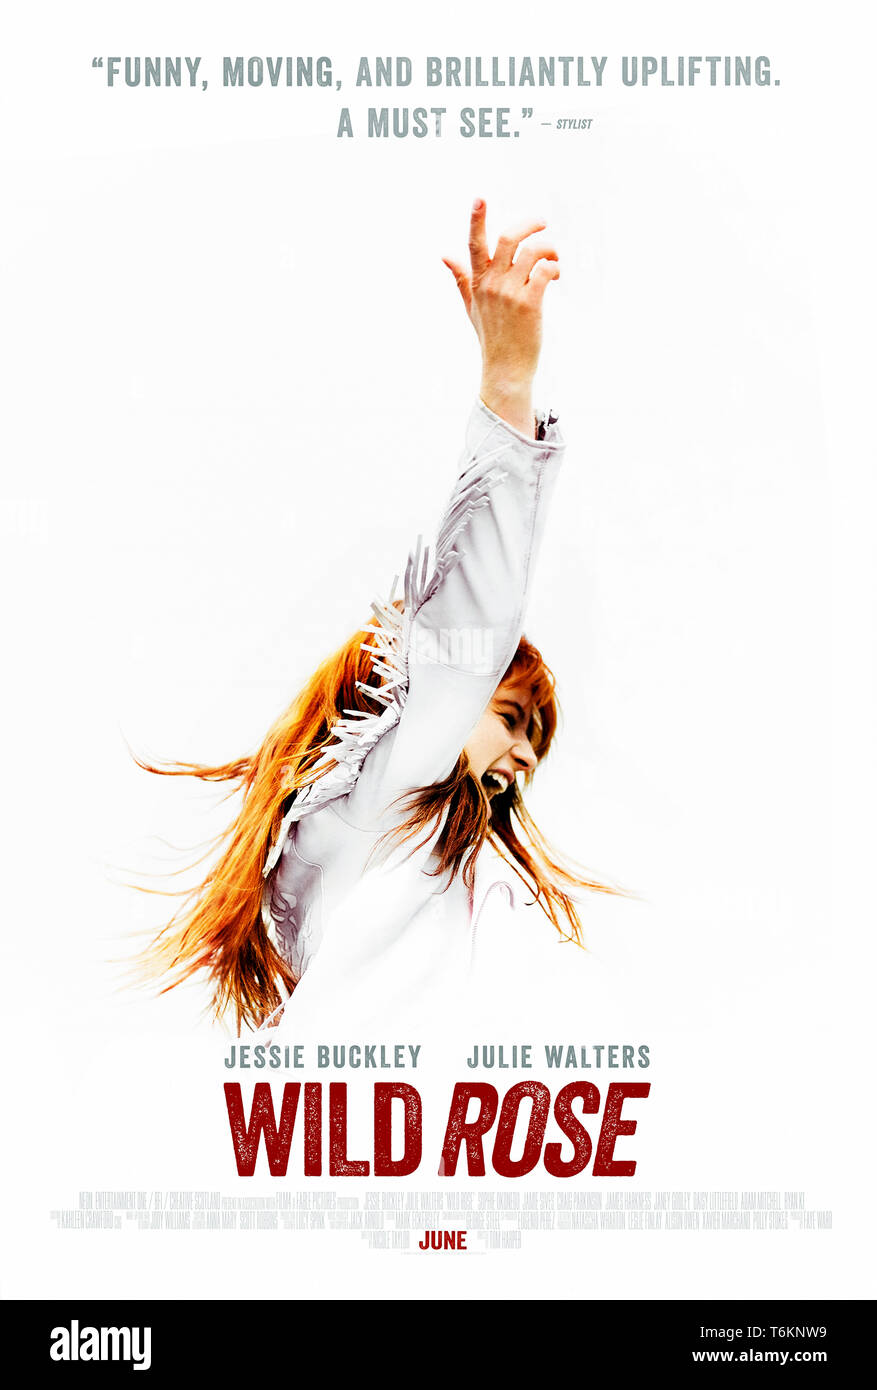 Wild Rose (2018) directed by Tom Harper and starring Julie Walters, Jessie Buckley, and Craig Parkinson. A Glaswegian girl dreams of becoming a country singer in Nashville. - Stock Image